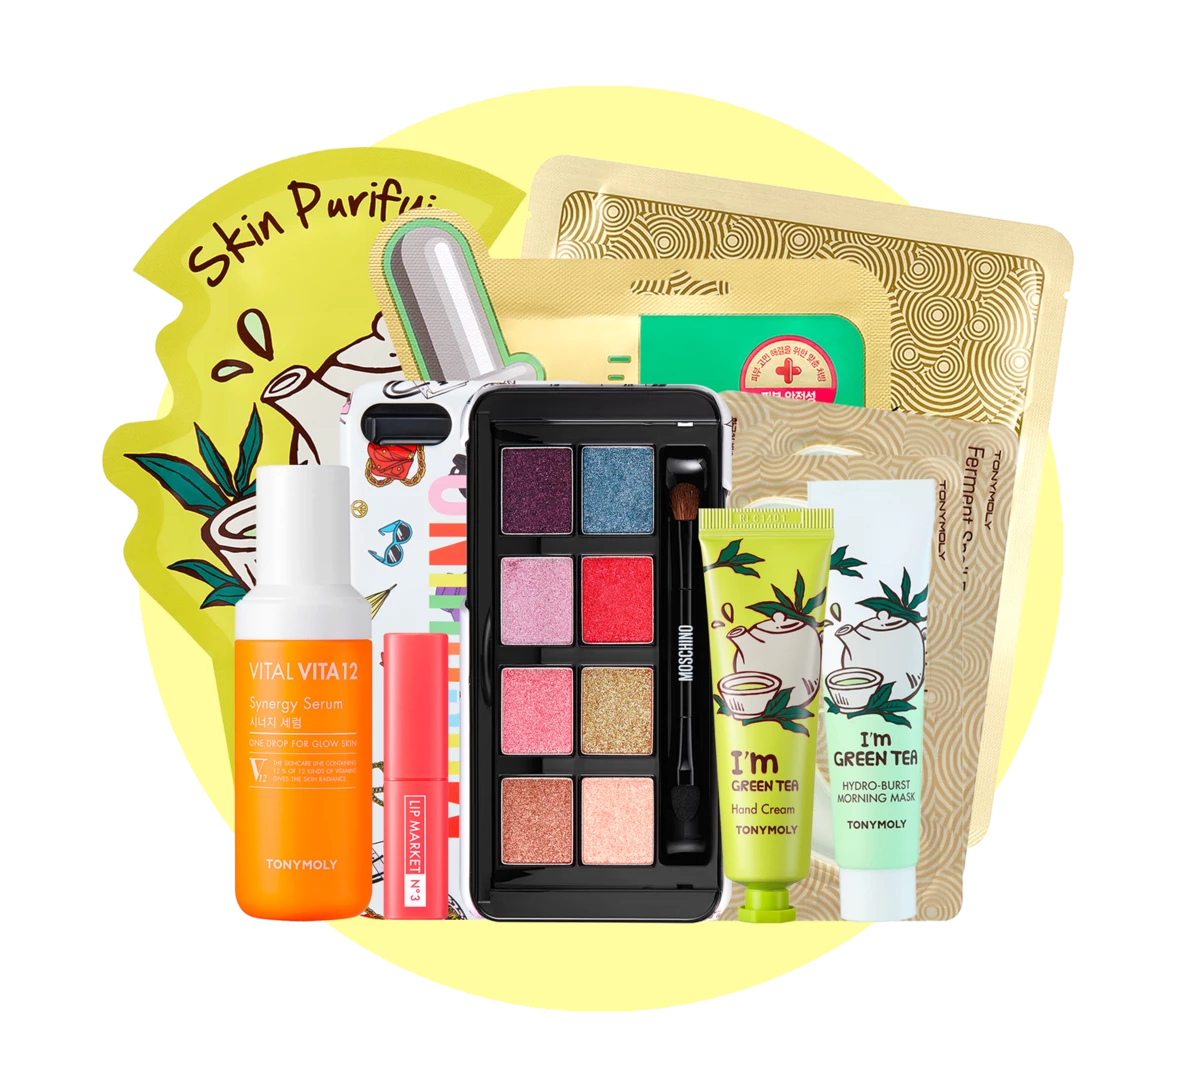 Tony Moly October 2019 Monthly Bundle Available Now + Full Spoilers!